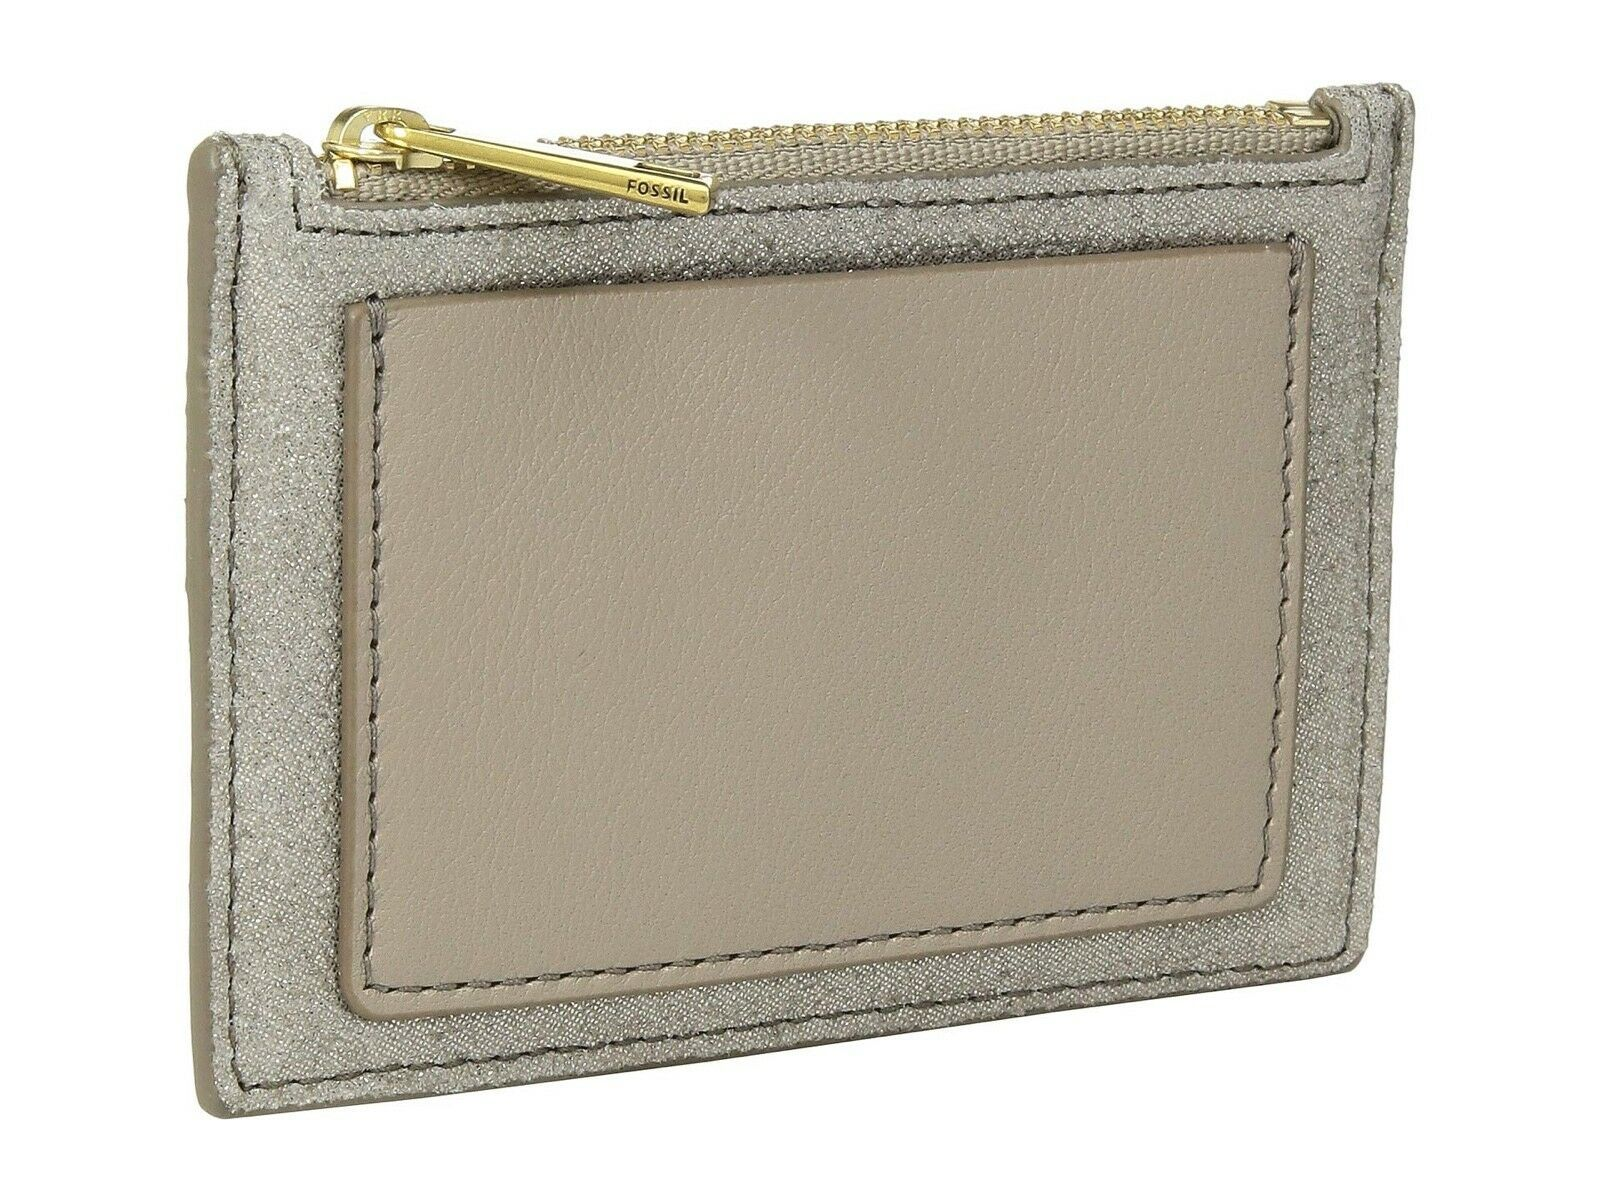 New Women's Fossil Shelby Champagne Zip Coin Card Pocket Wallet Metallic Leather